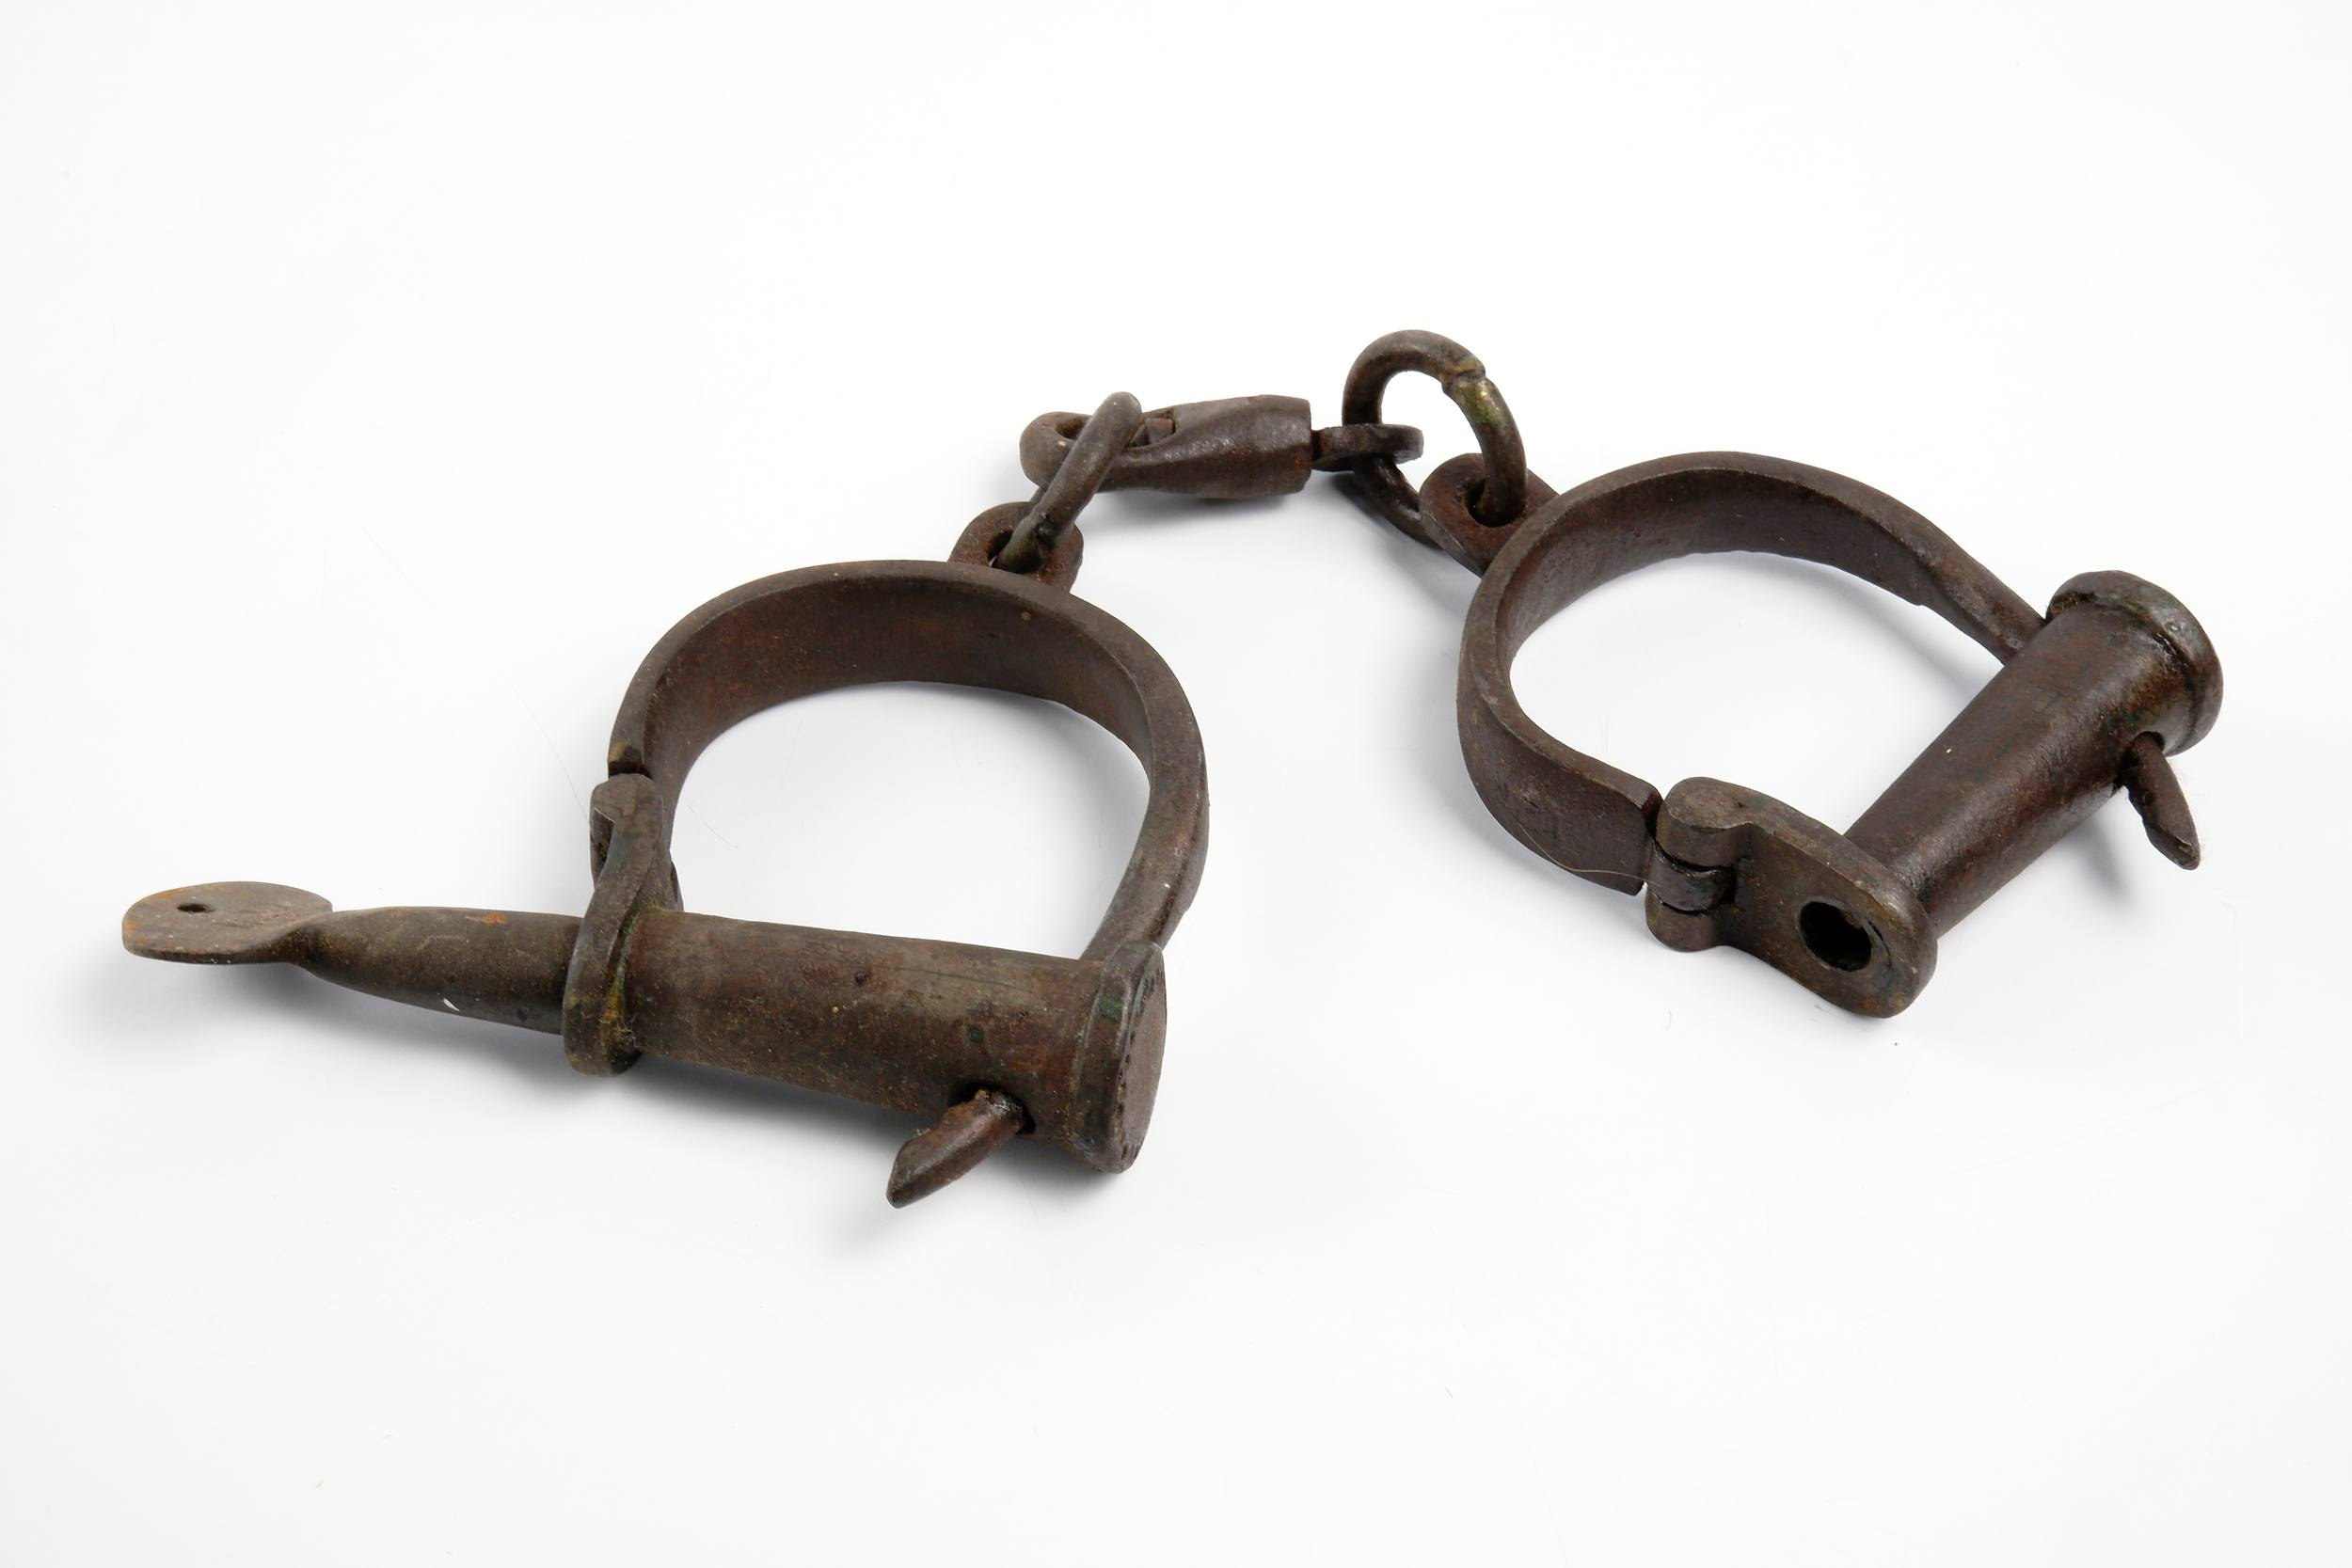 'Antique Hand Forged Handcuffs, Mid to Late 19th Century'